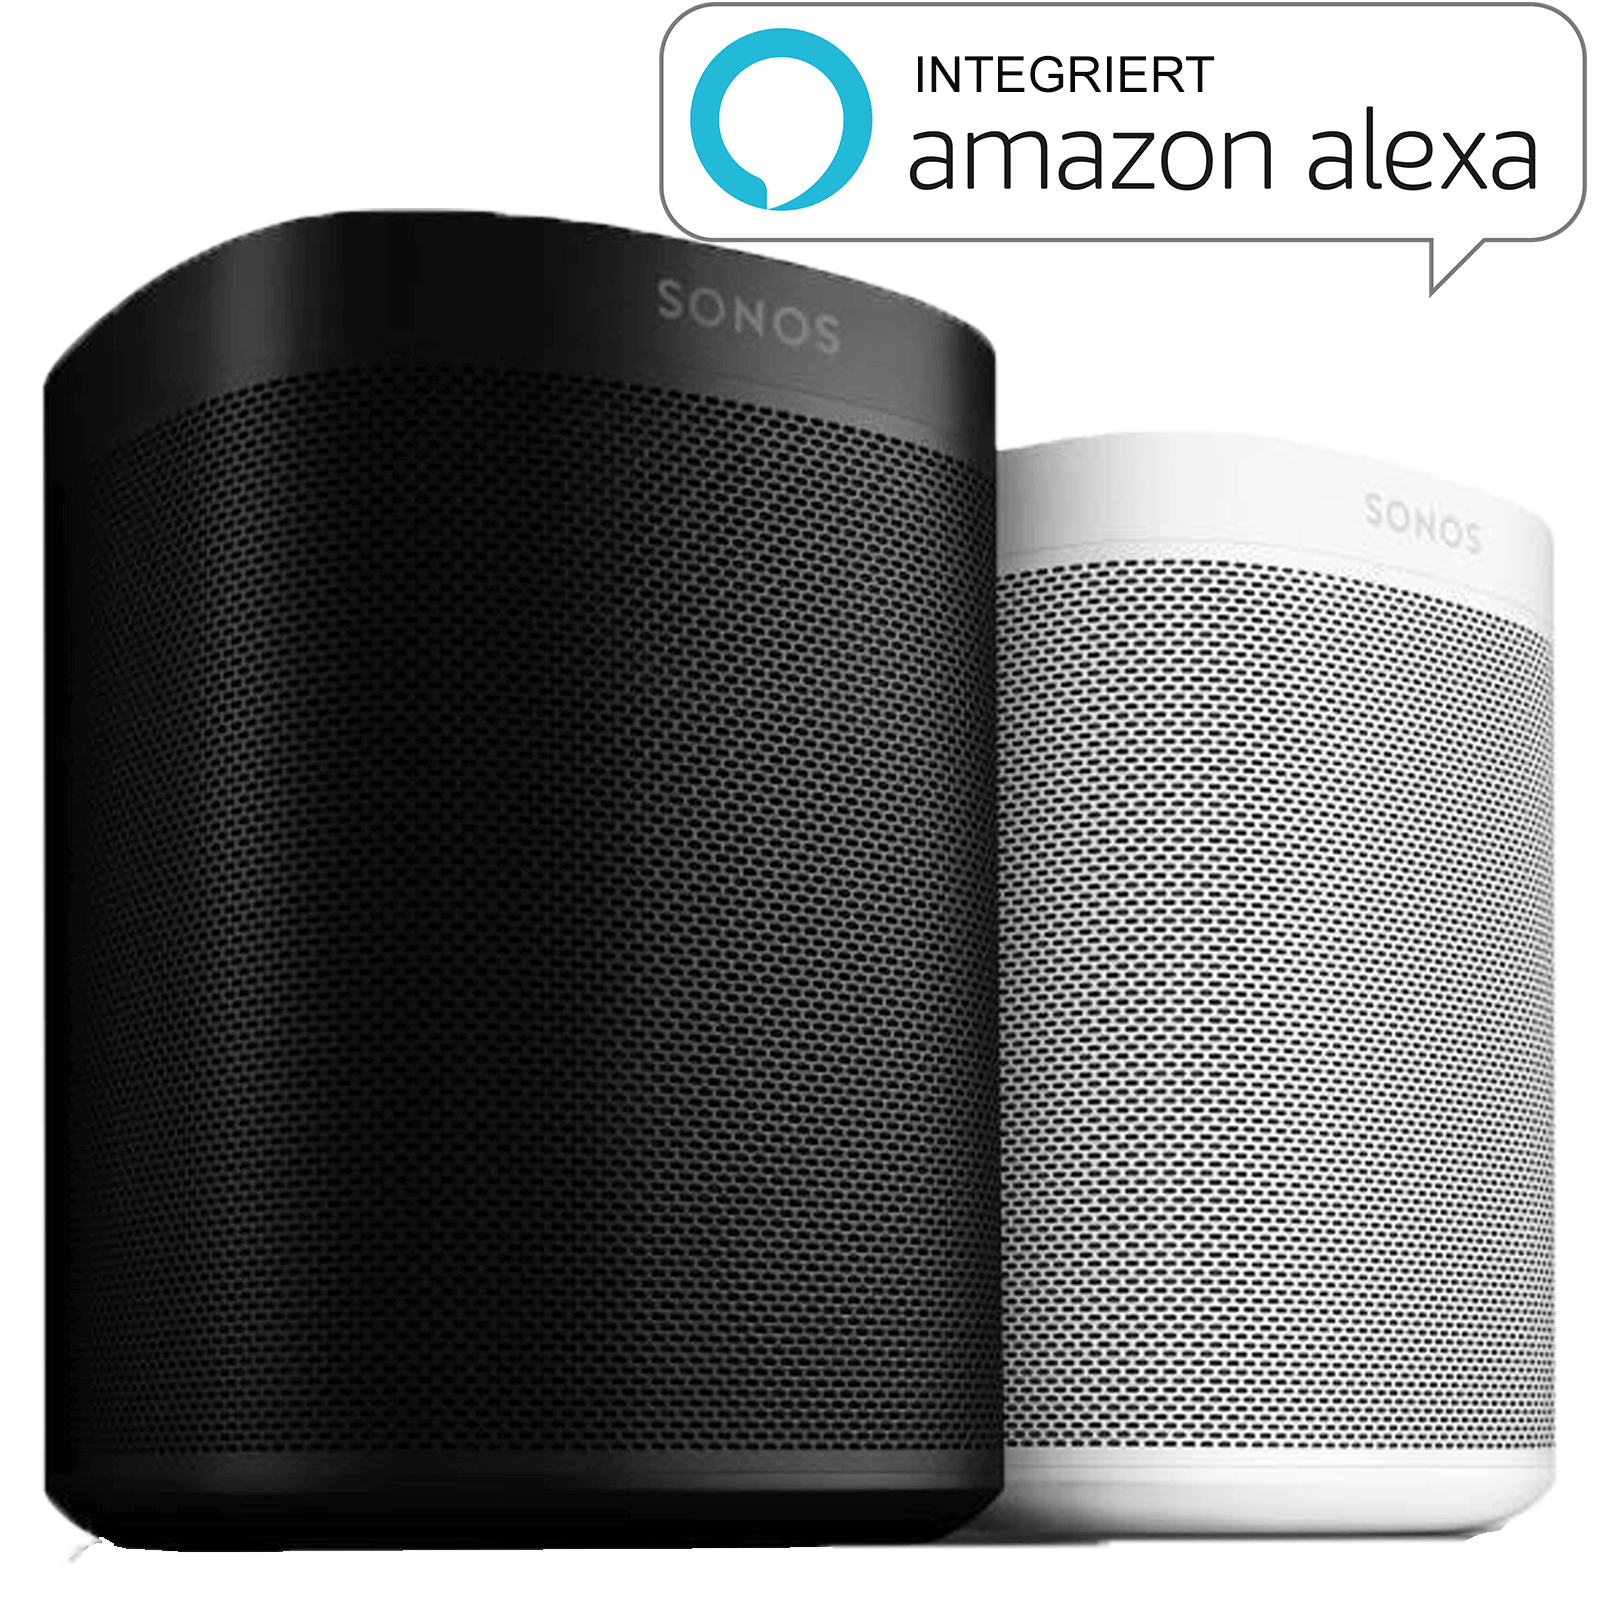 sonos one lautpsrecher mit alexa sprachsteuerung smart home ger te hier online kaufen. Black Bedroom Furniture Sets. Home Design Ideas